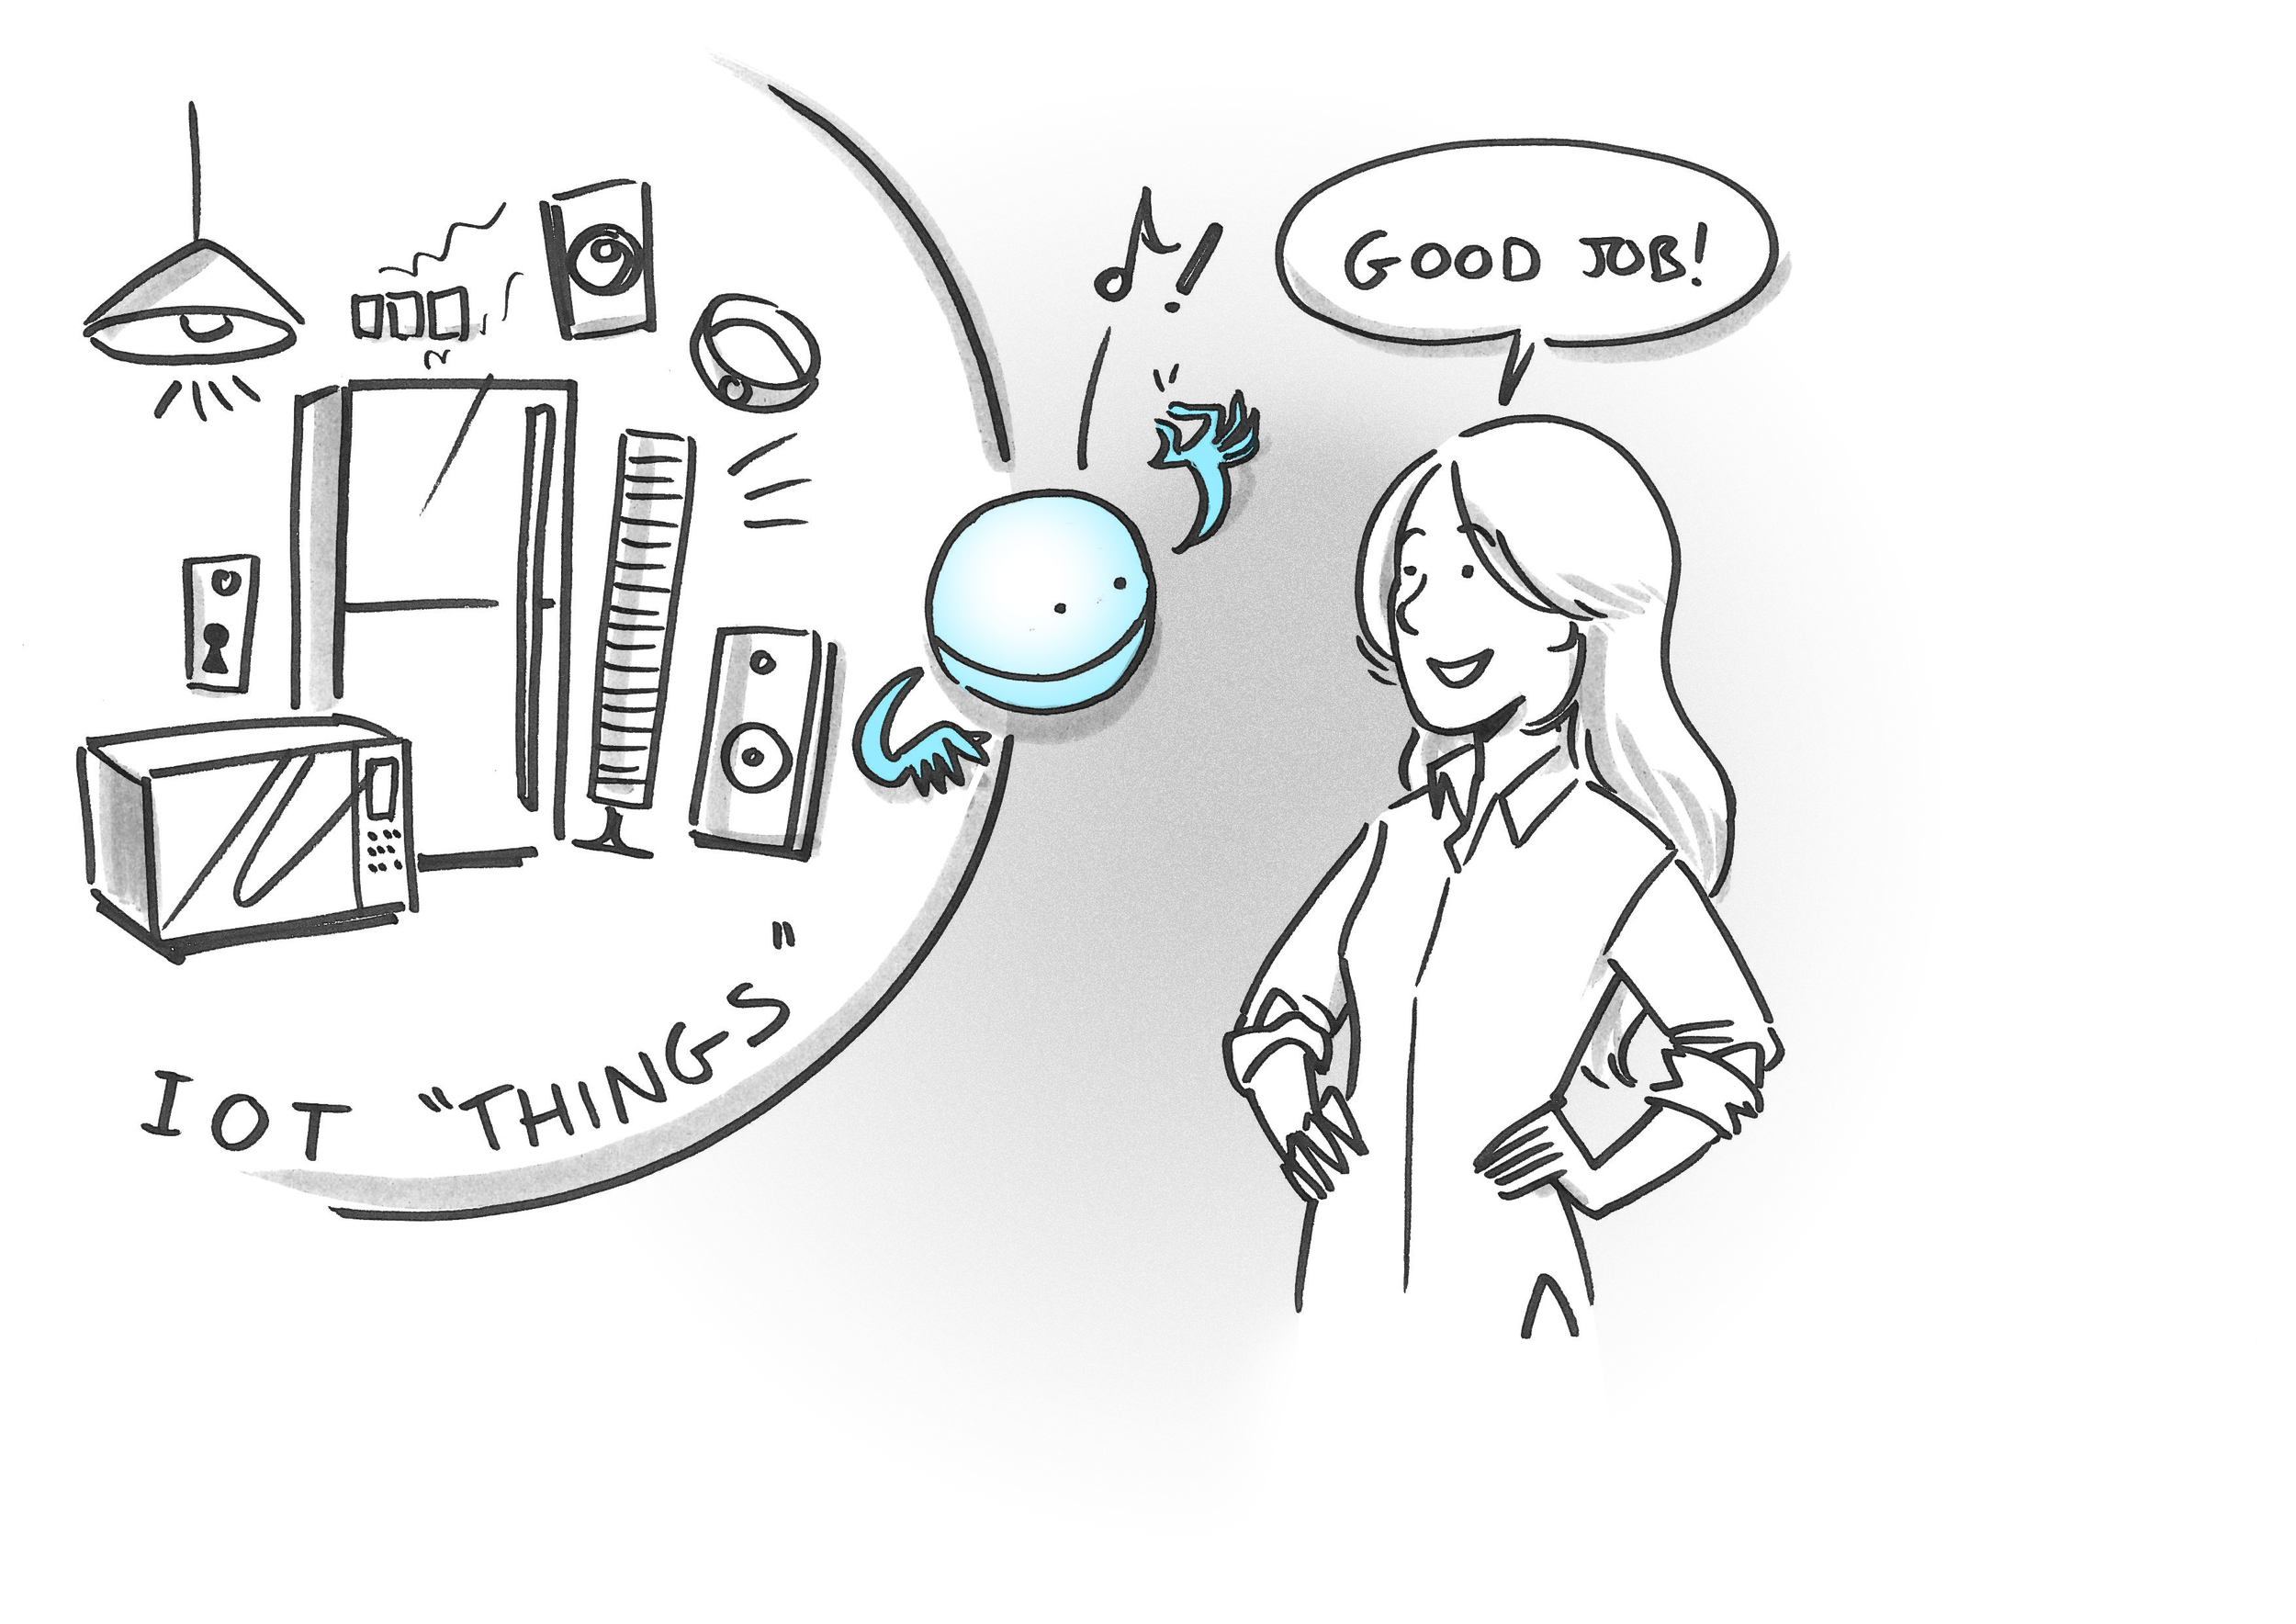 The Housekeeper of Me manages Internet of Things things.